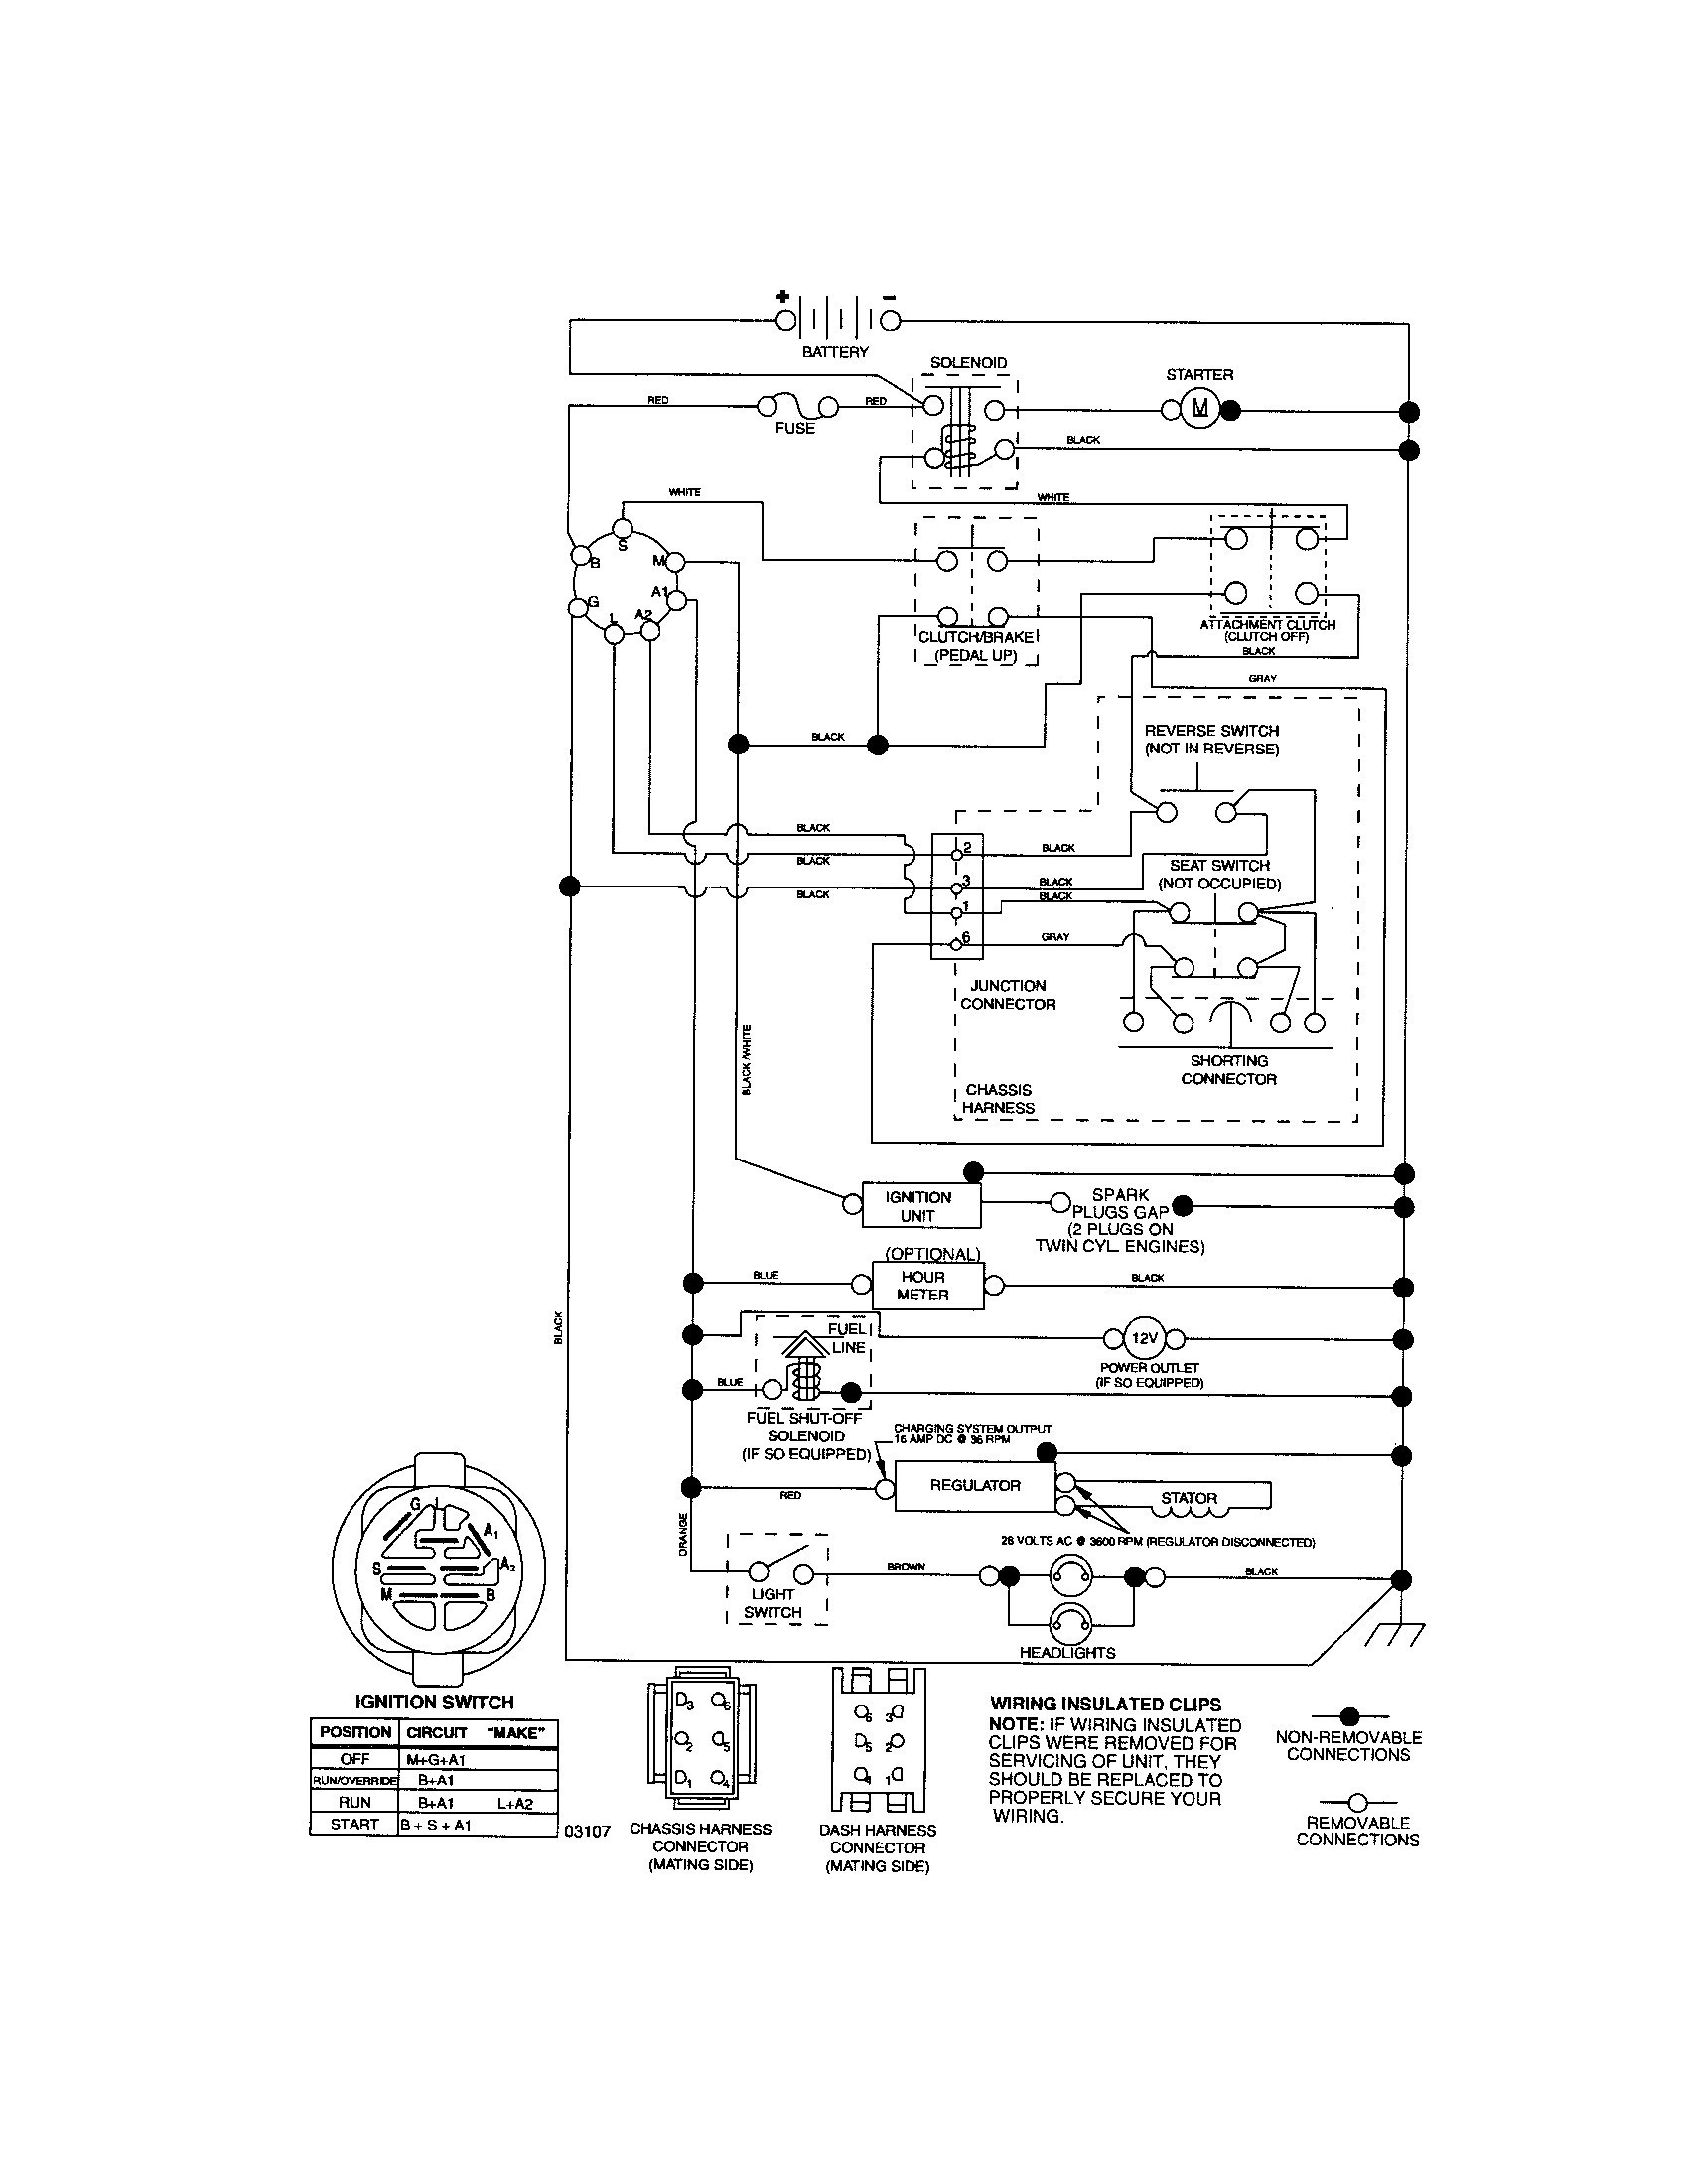 Ih Tractor Wiring Diagram